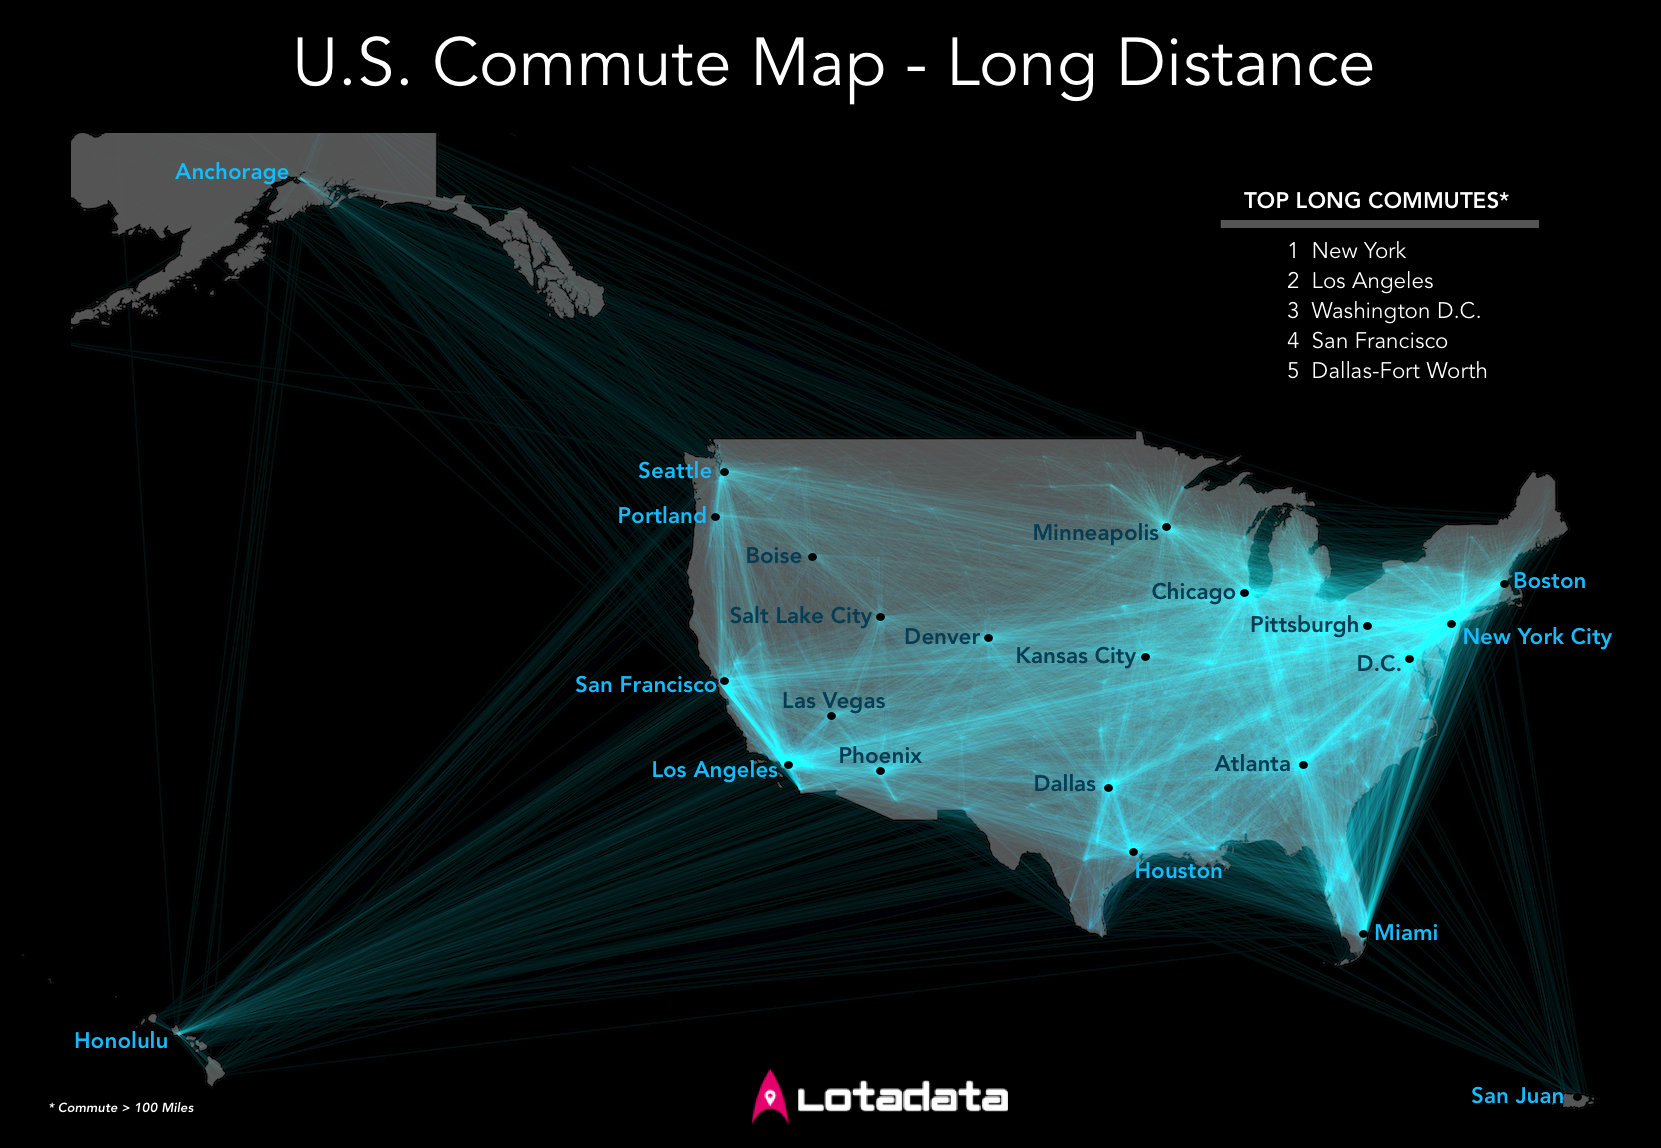 U.S. Commute Map - Long Distance